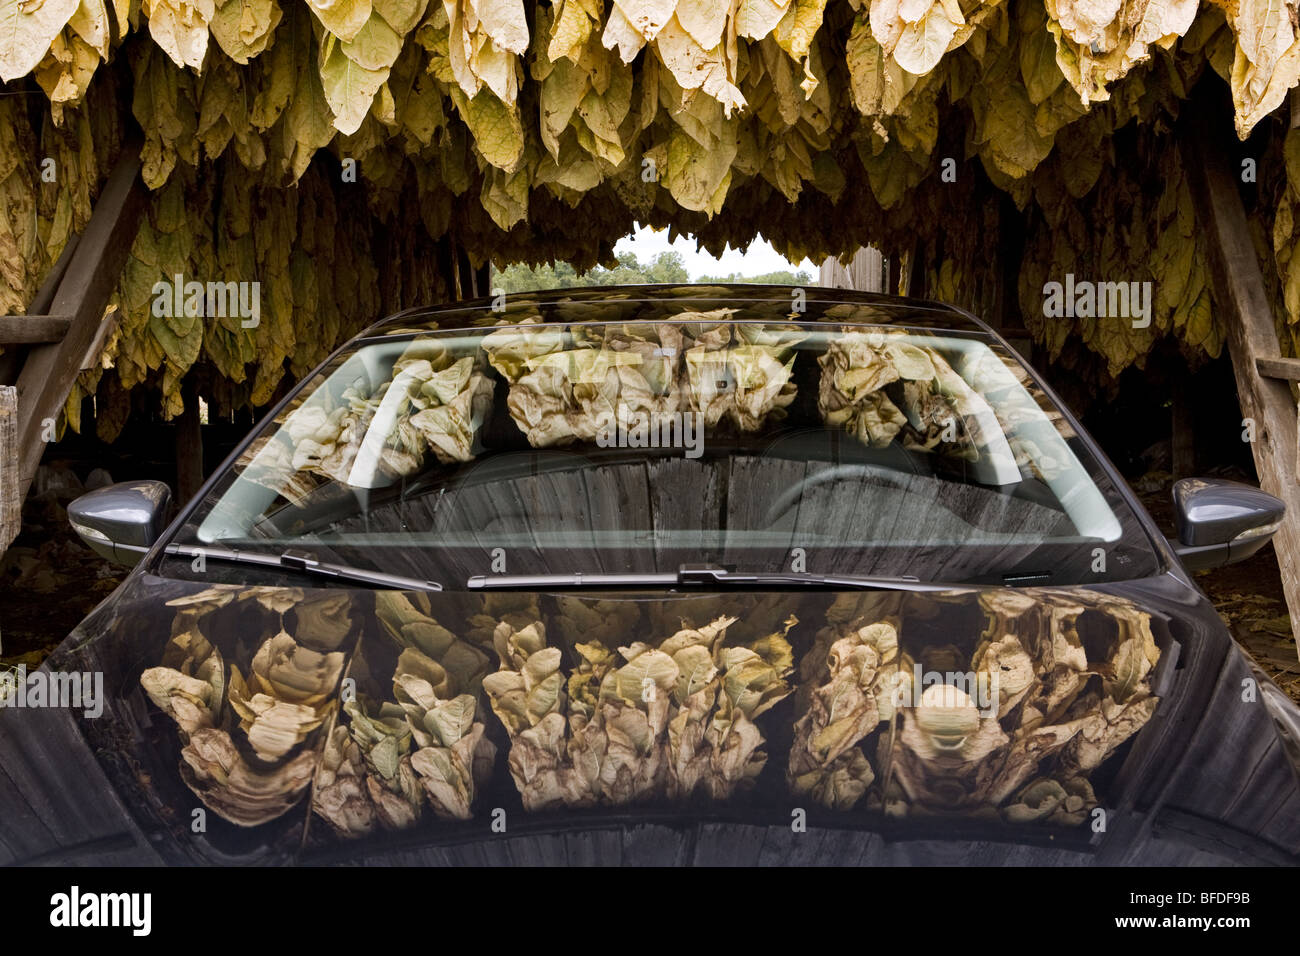 Reflections of tobacco leaves on a car's glass and chrome surface. - Stock Image